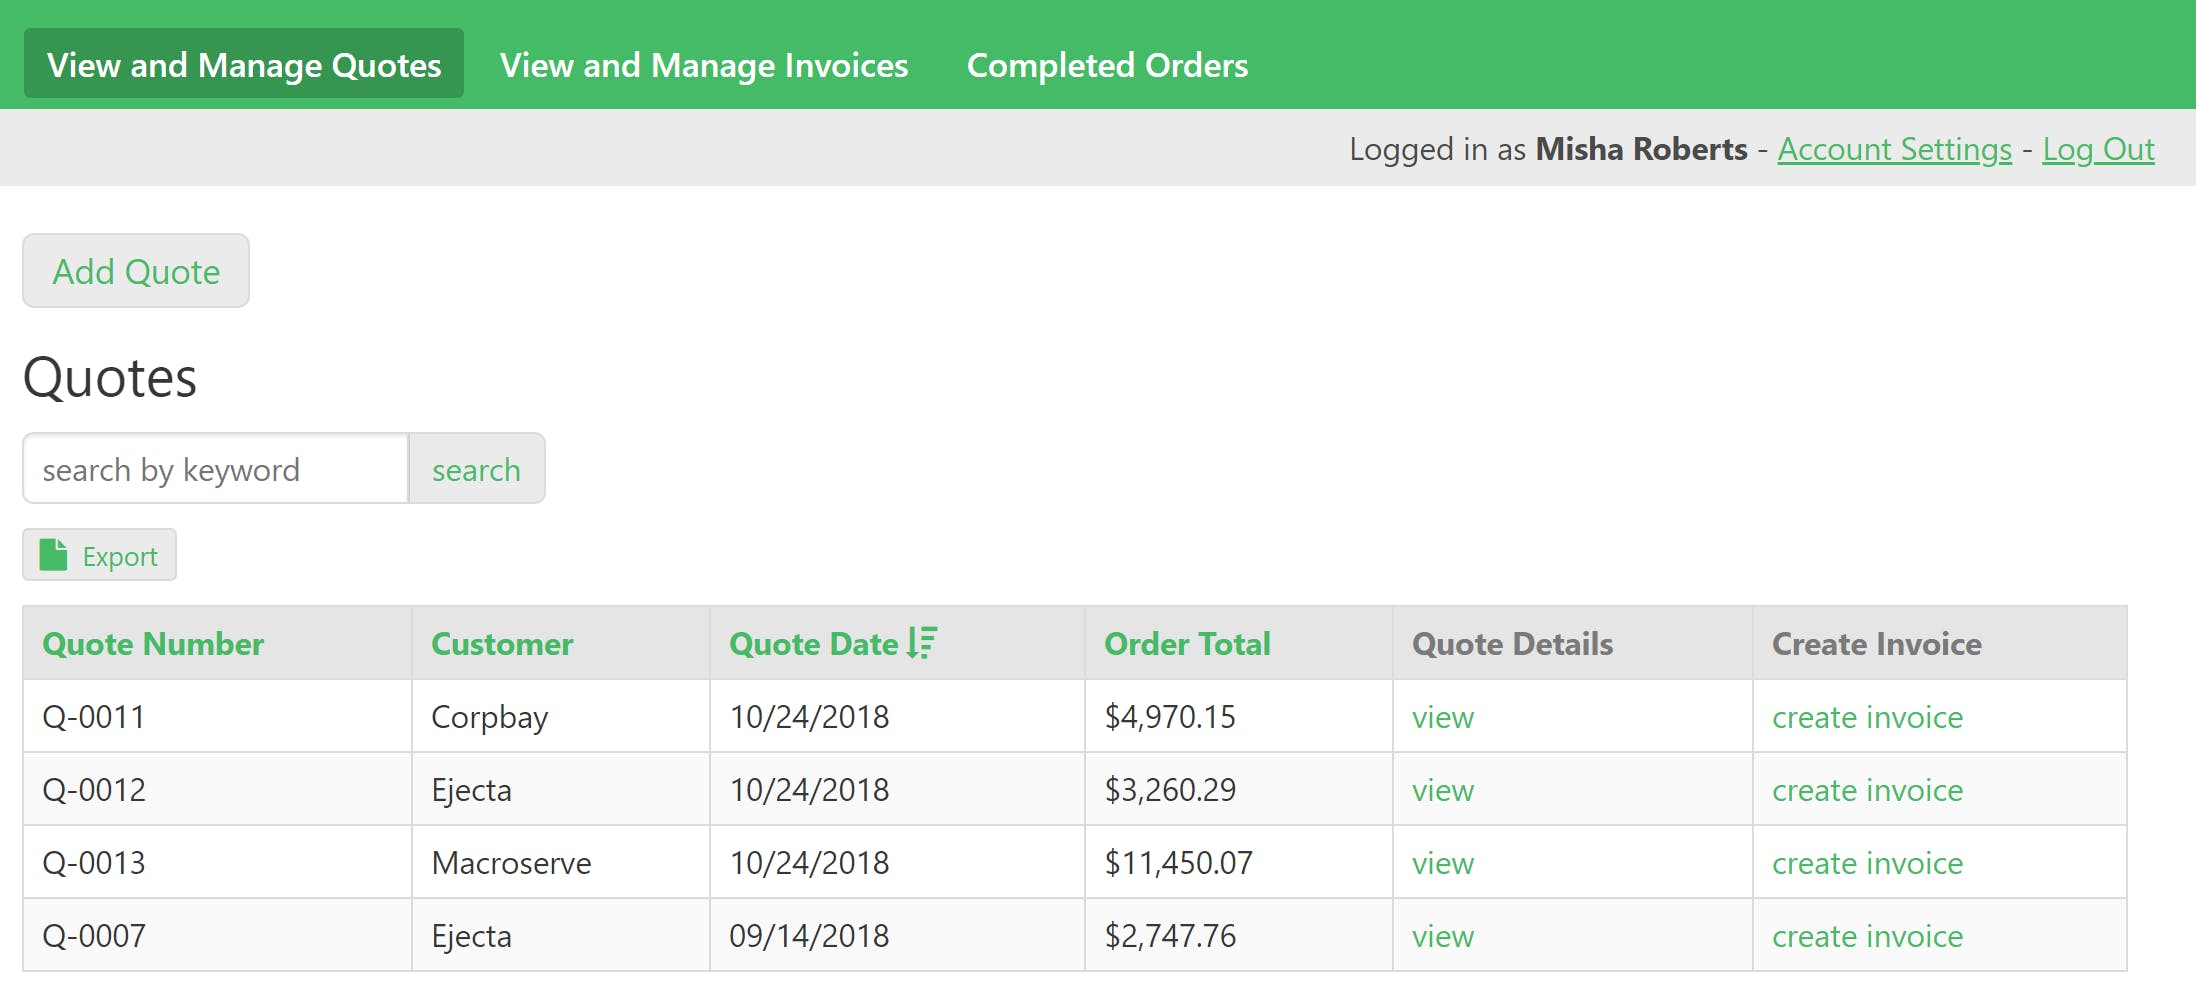 The sales portal splits quotes, invoices, and completed orders on their own pages for easy viewing.